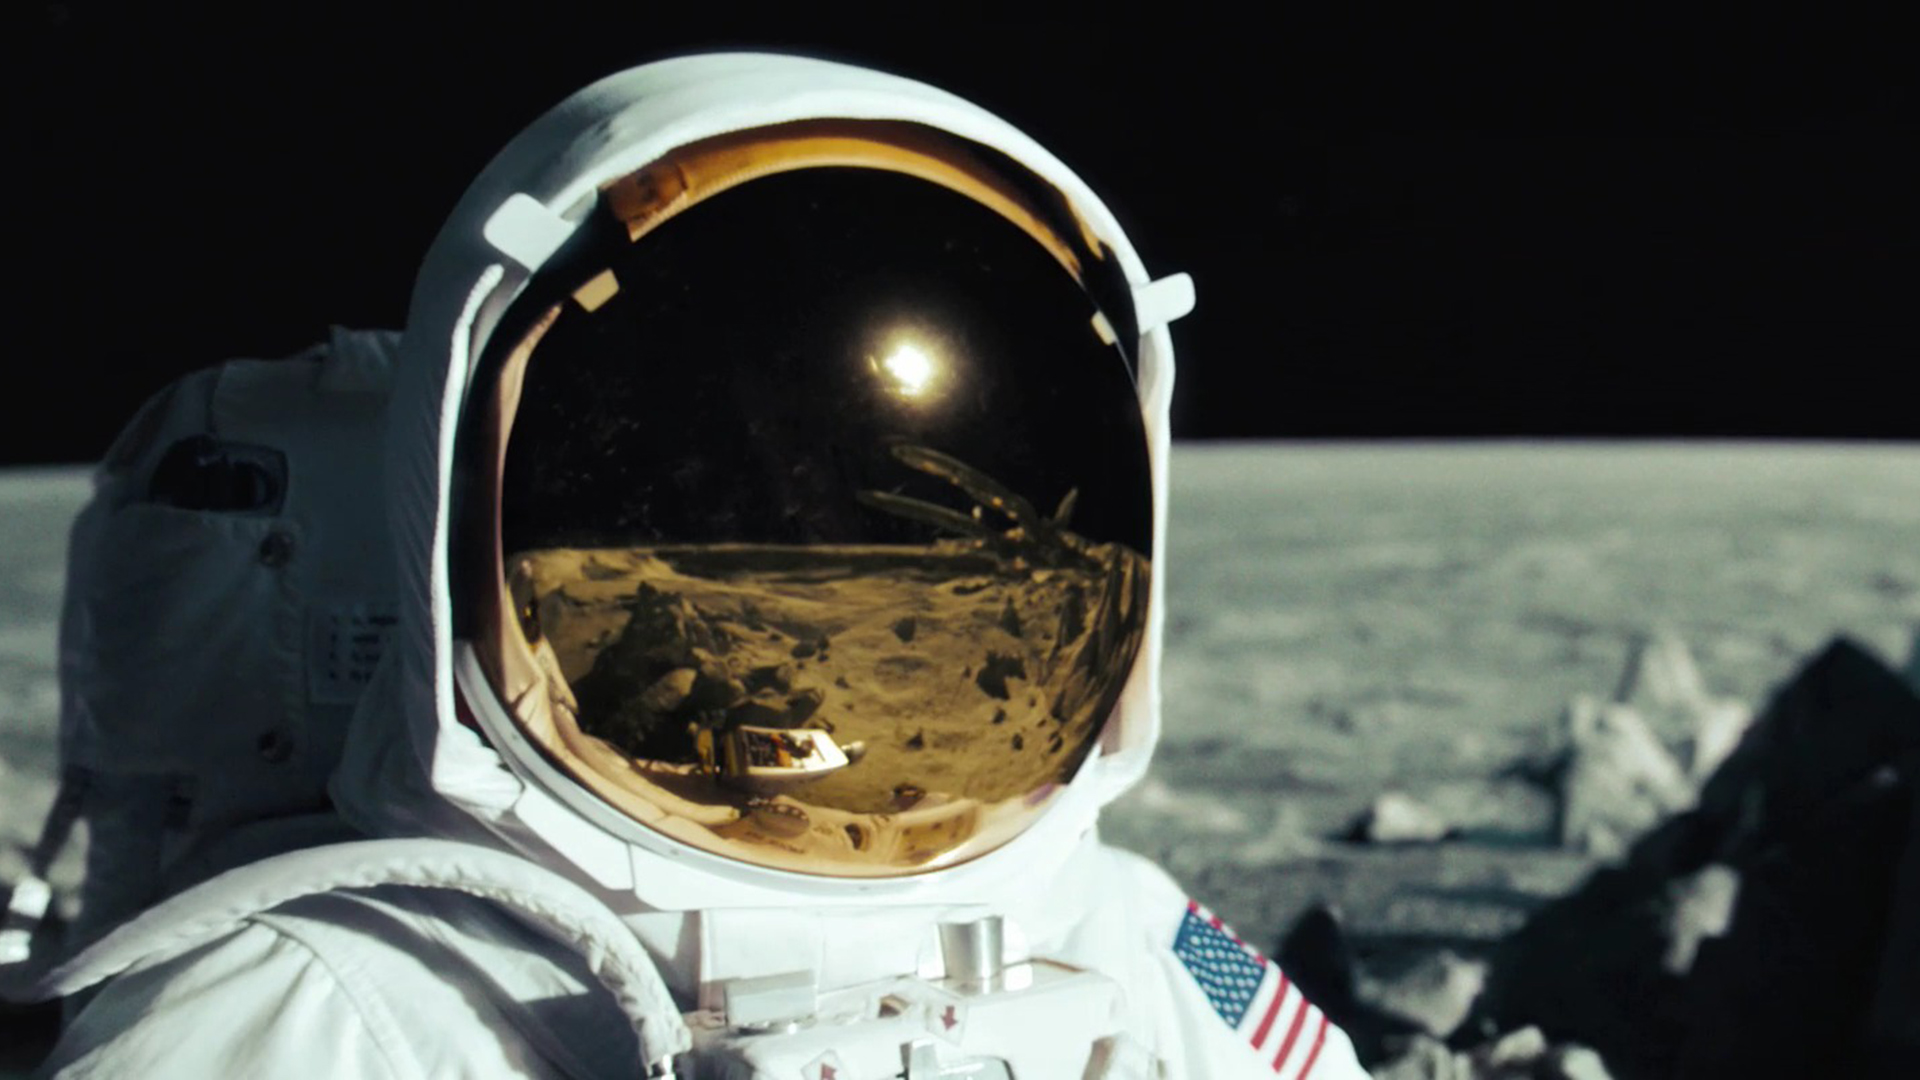 astronauts to go to moon - photo #21